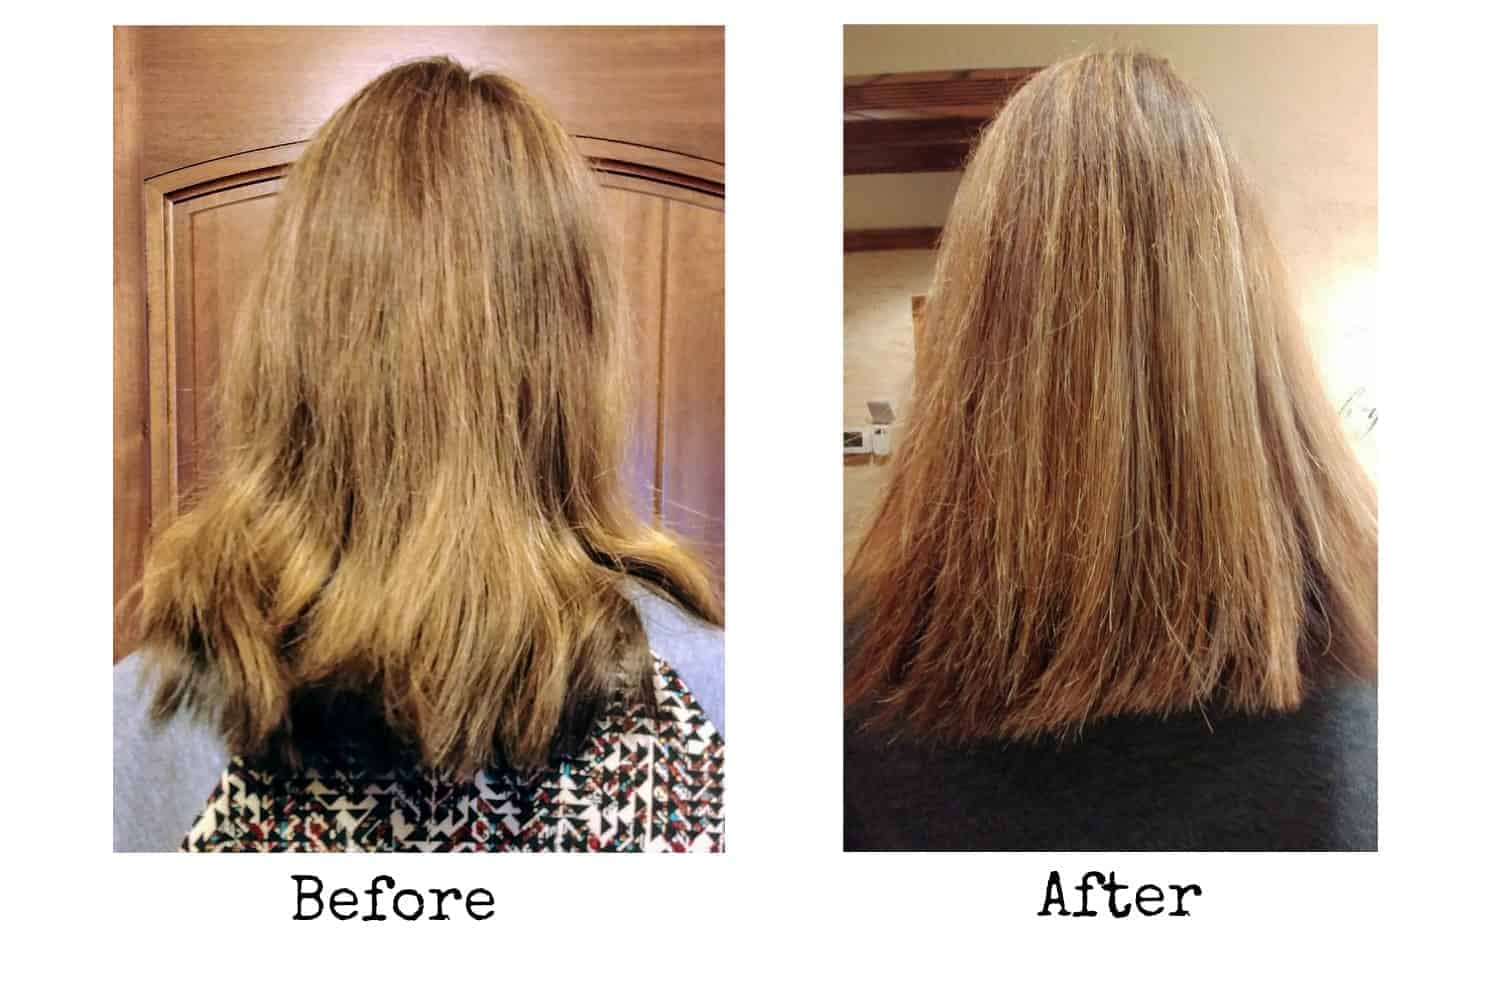 Before and After Monat